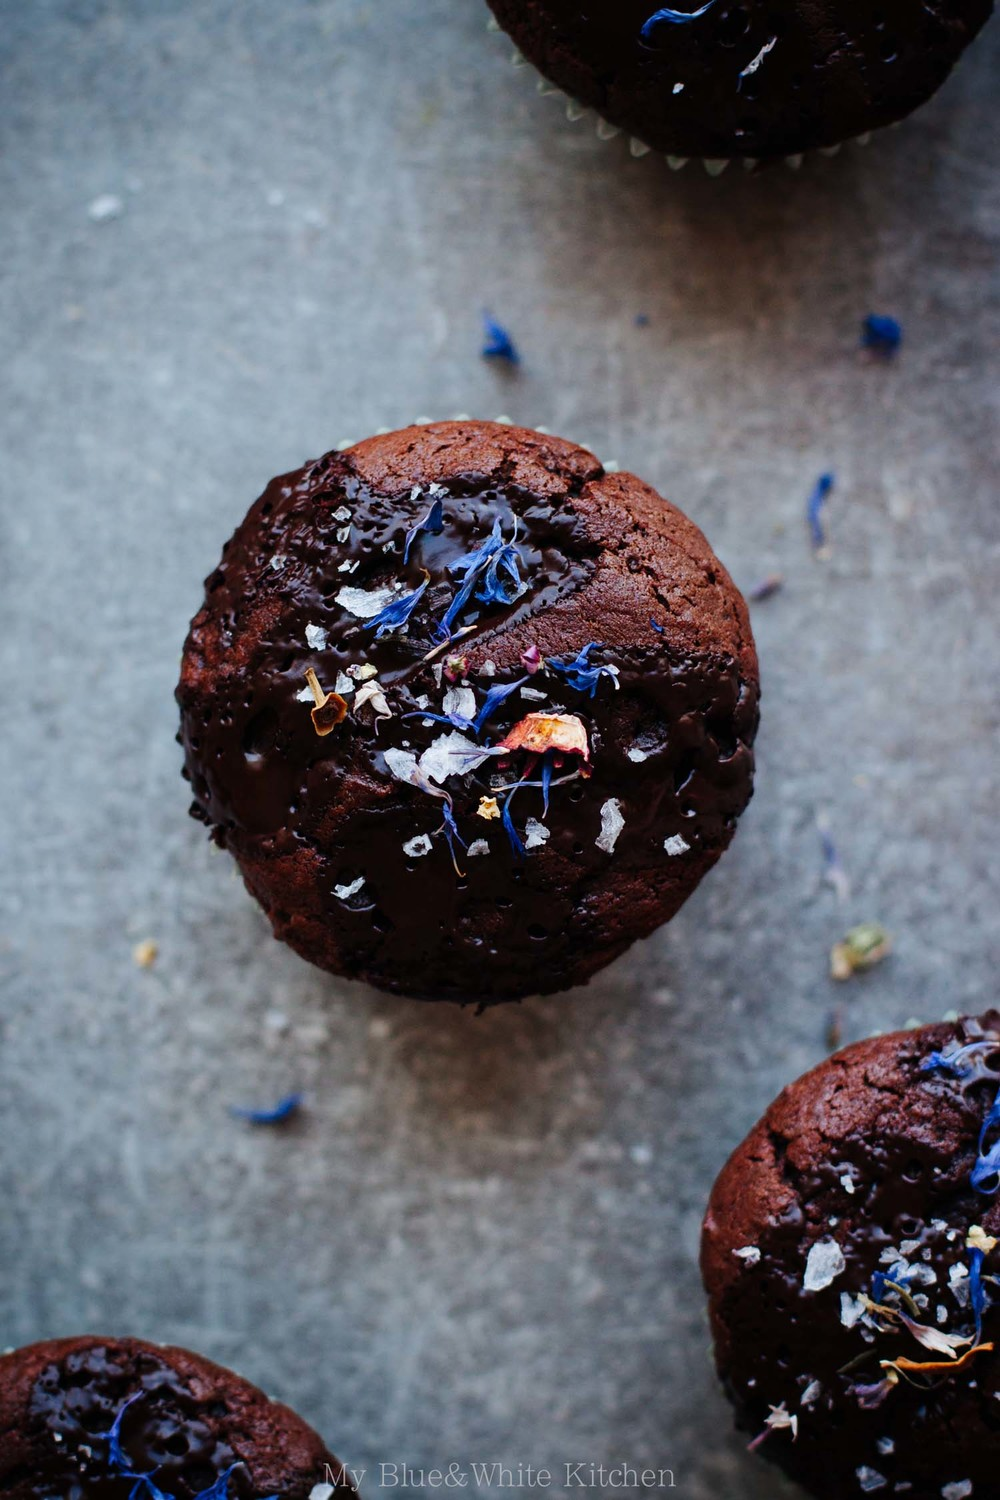 Double Chocolate Muffins with Flaked Sea Salt & Dried Flowers | My Blue&White Kitchen